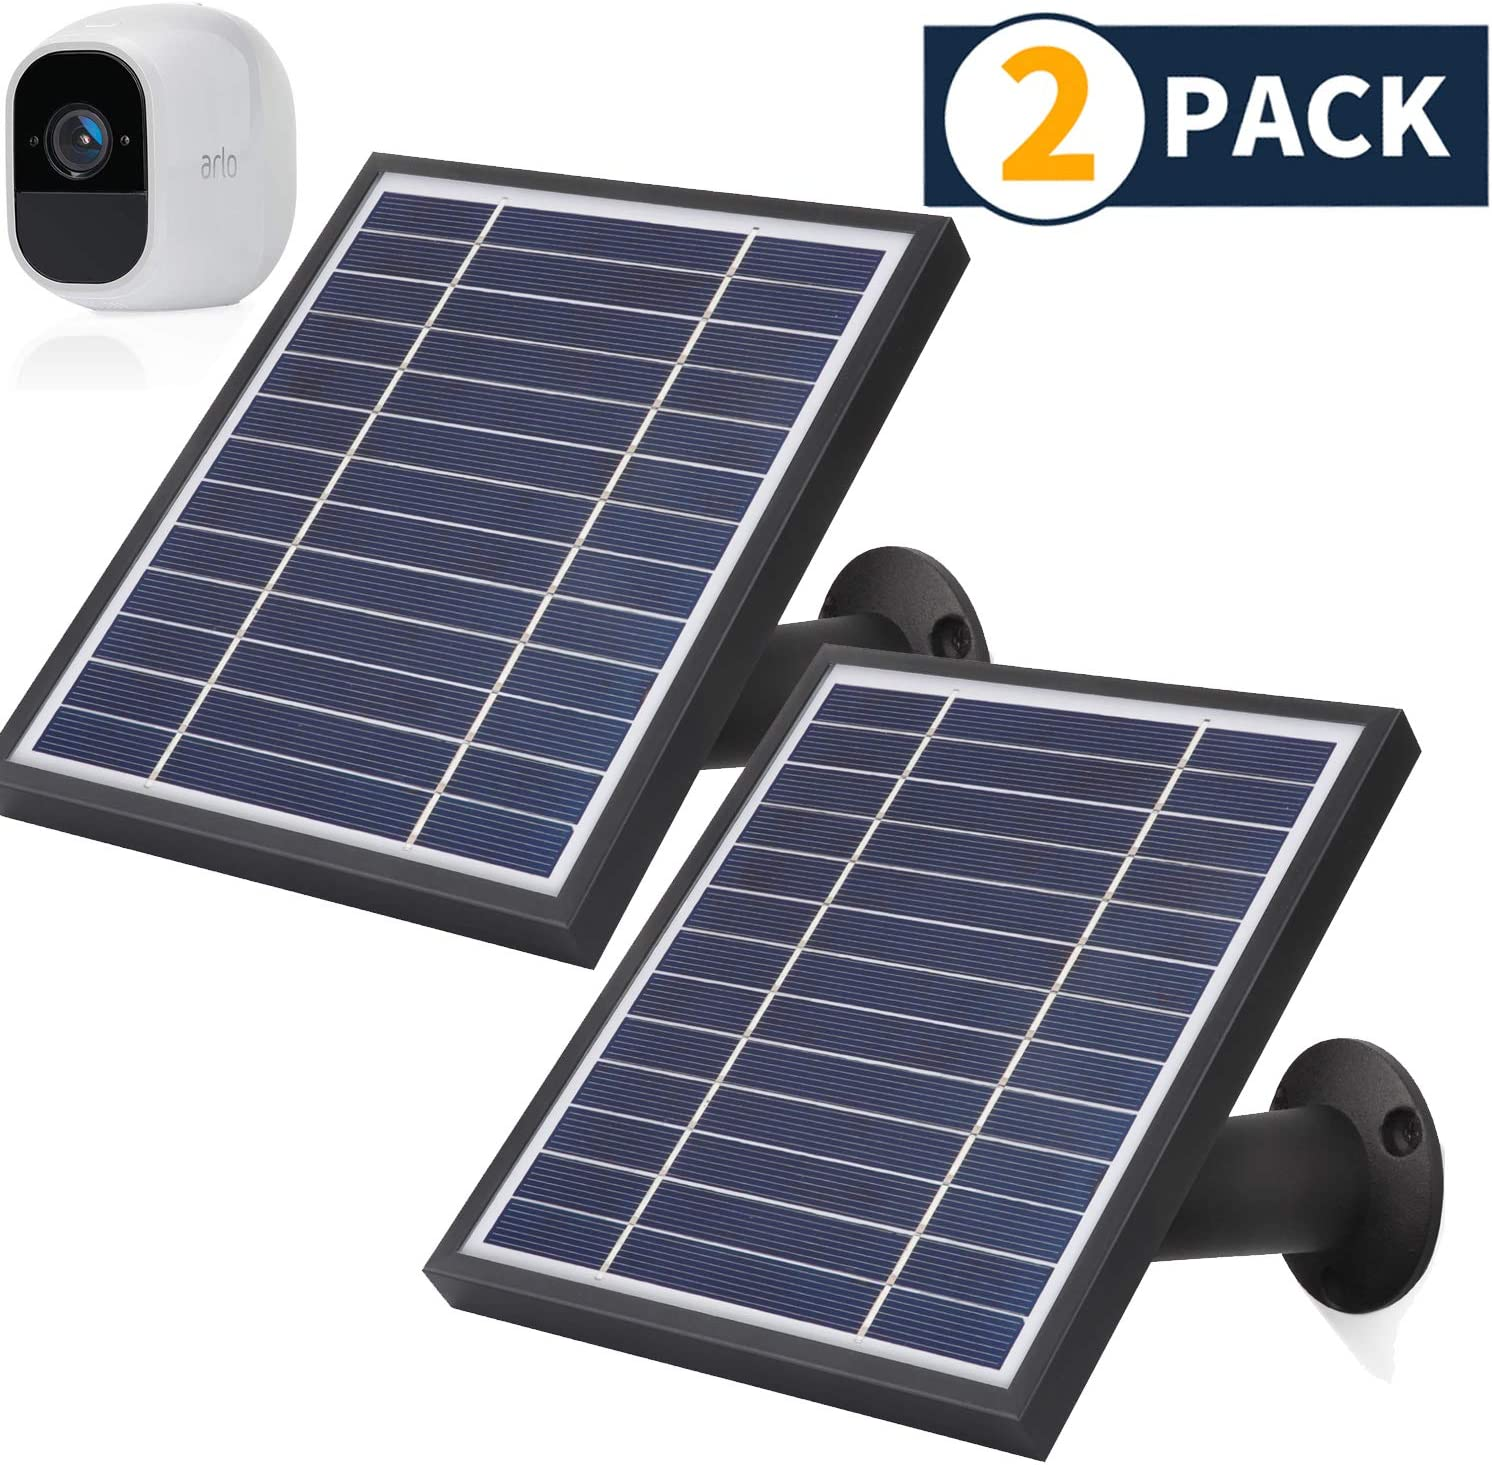 5 Best Solar Panels for Cloudy Days Reviews of 2020 4